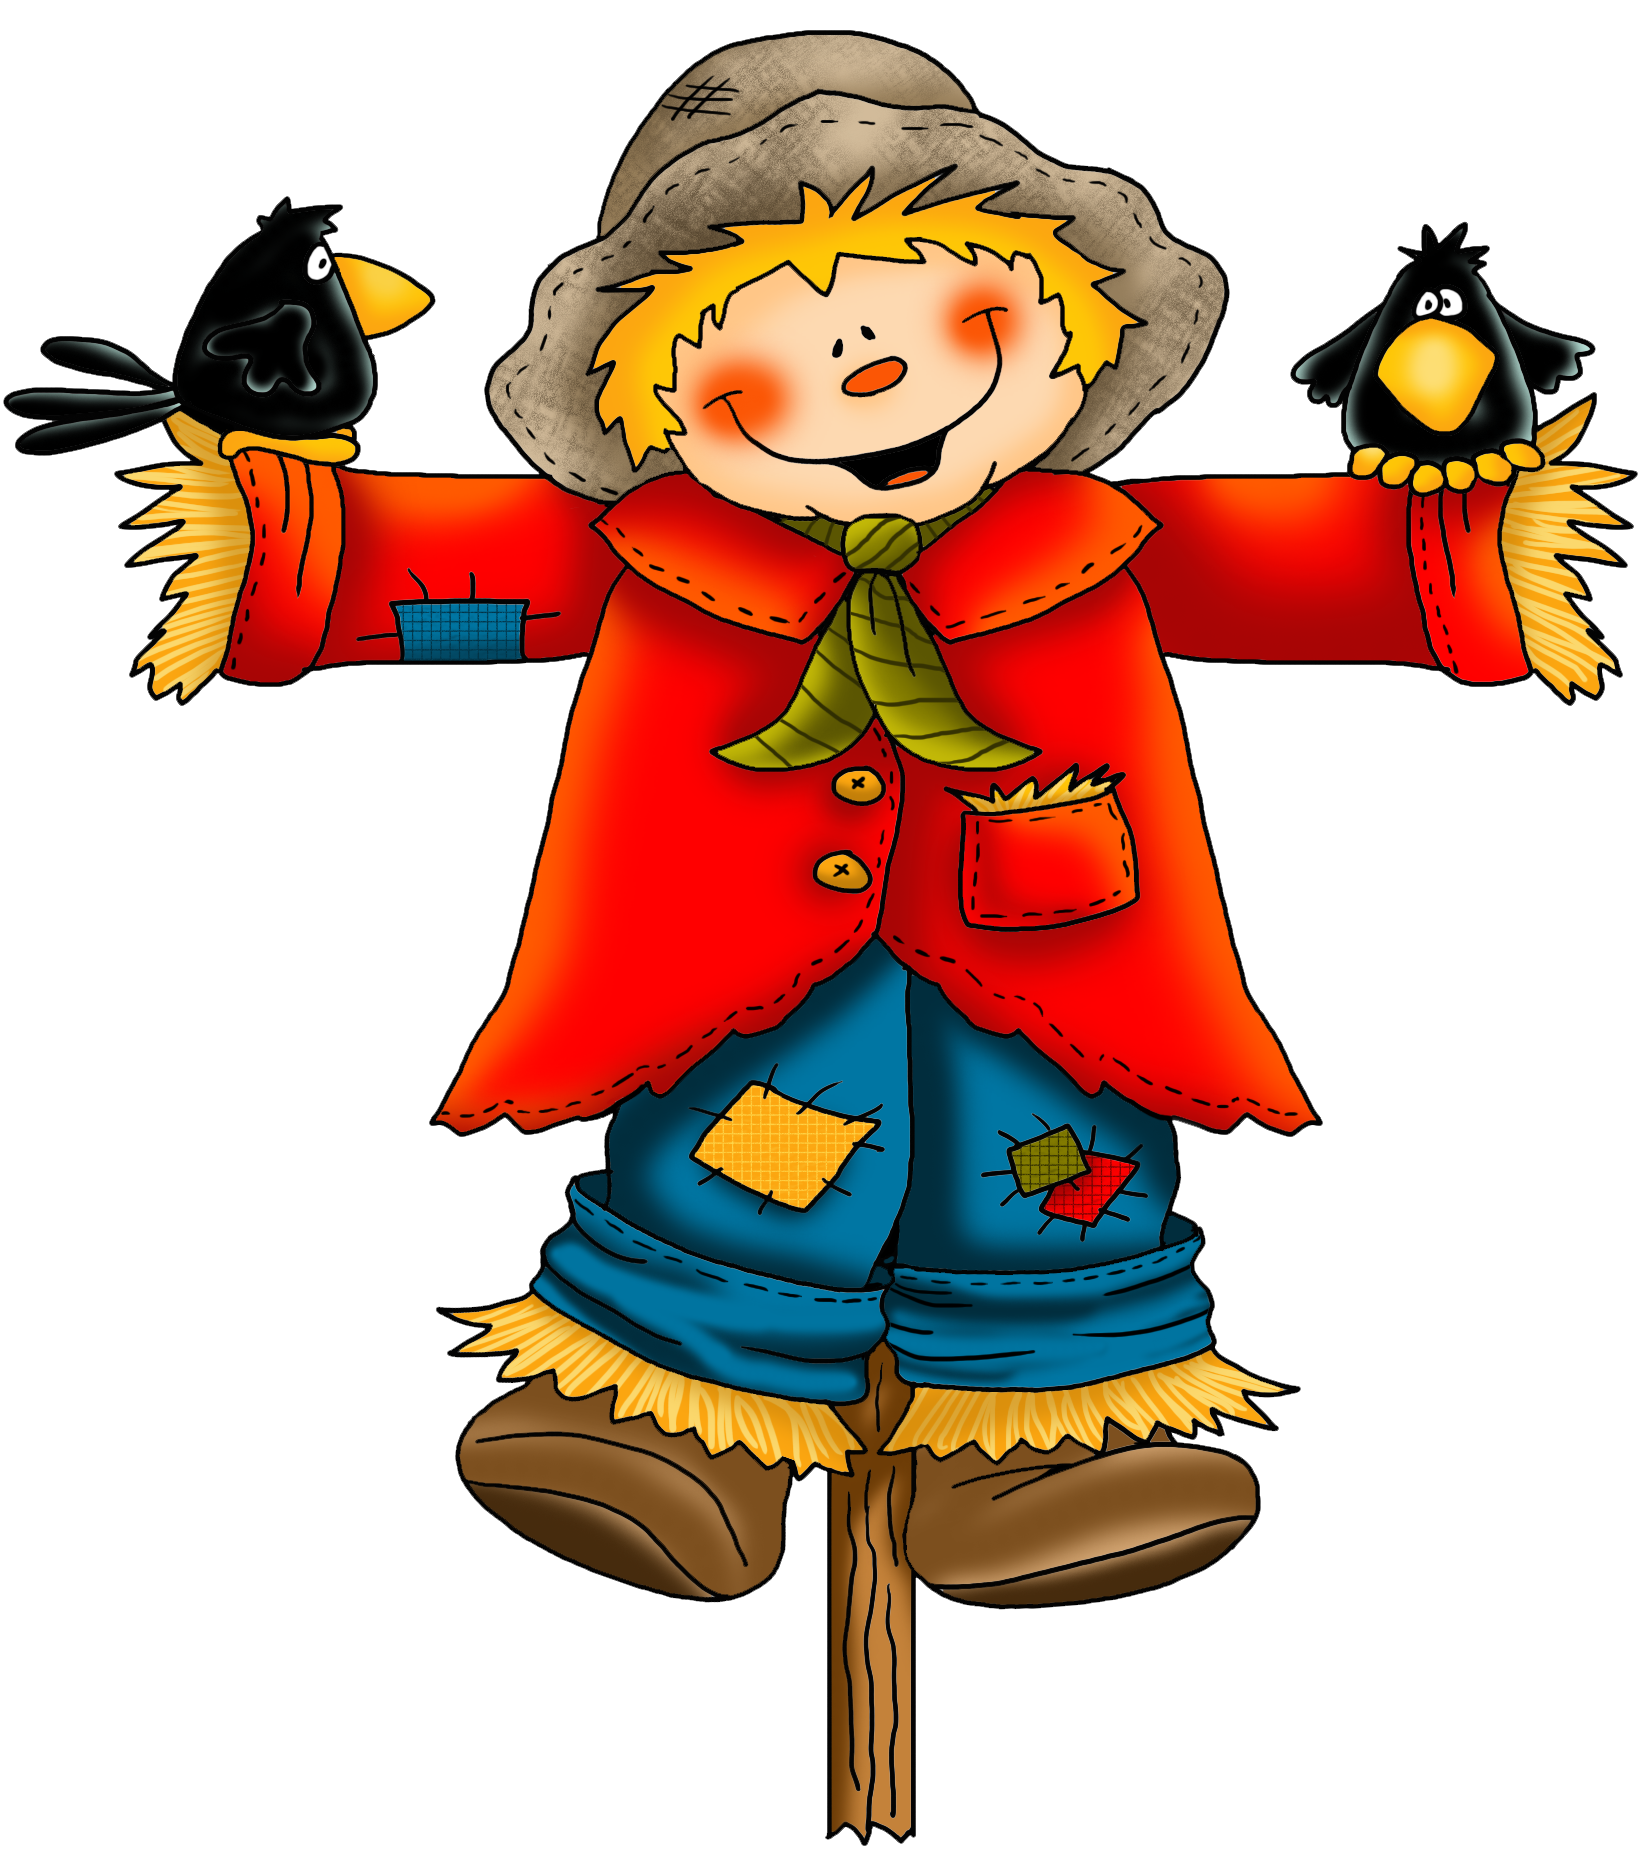 Cartoon Scarecrow Face How To Draw A Pic-Cartoon Scarecrow Face How To Draw A Pictures 1651 x 1876-9